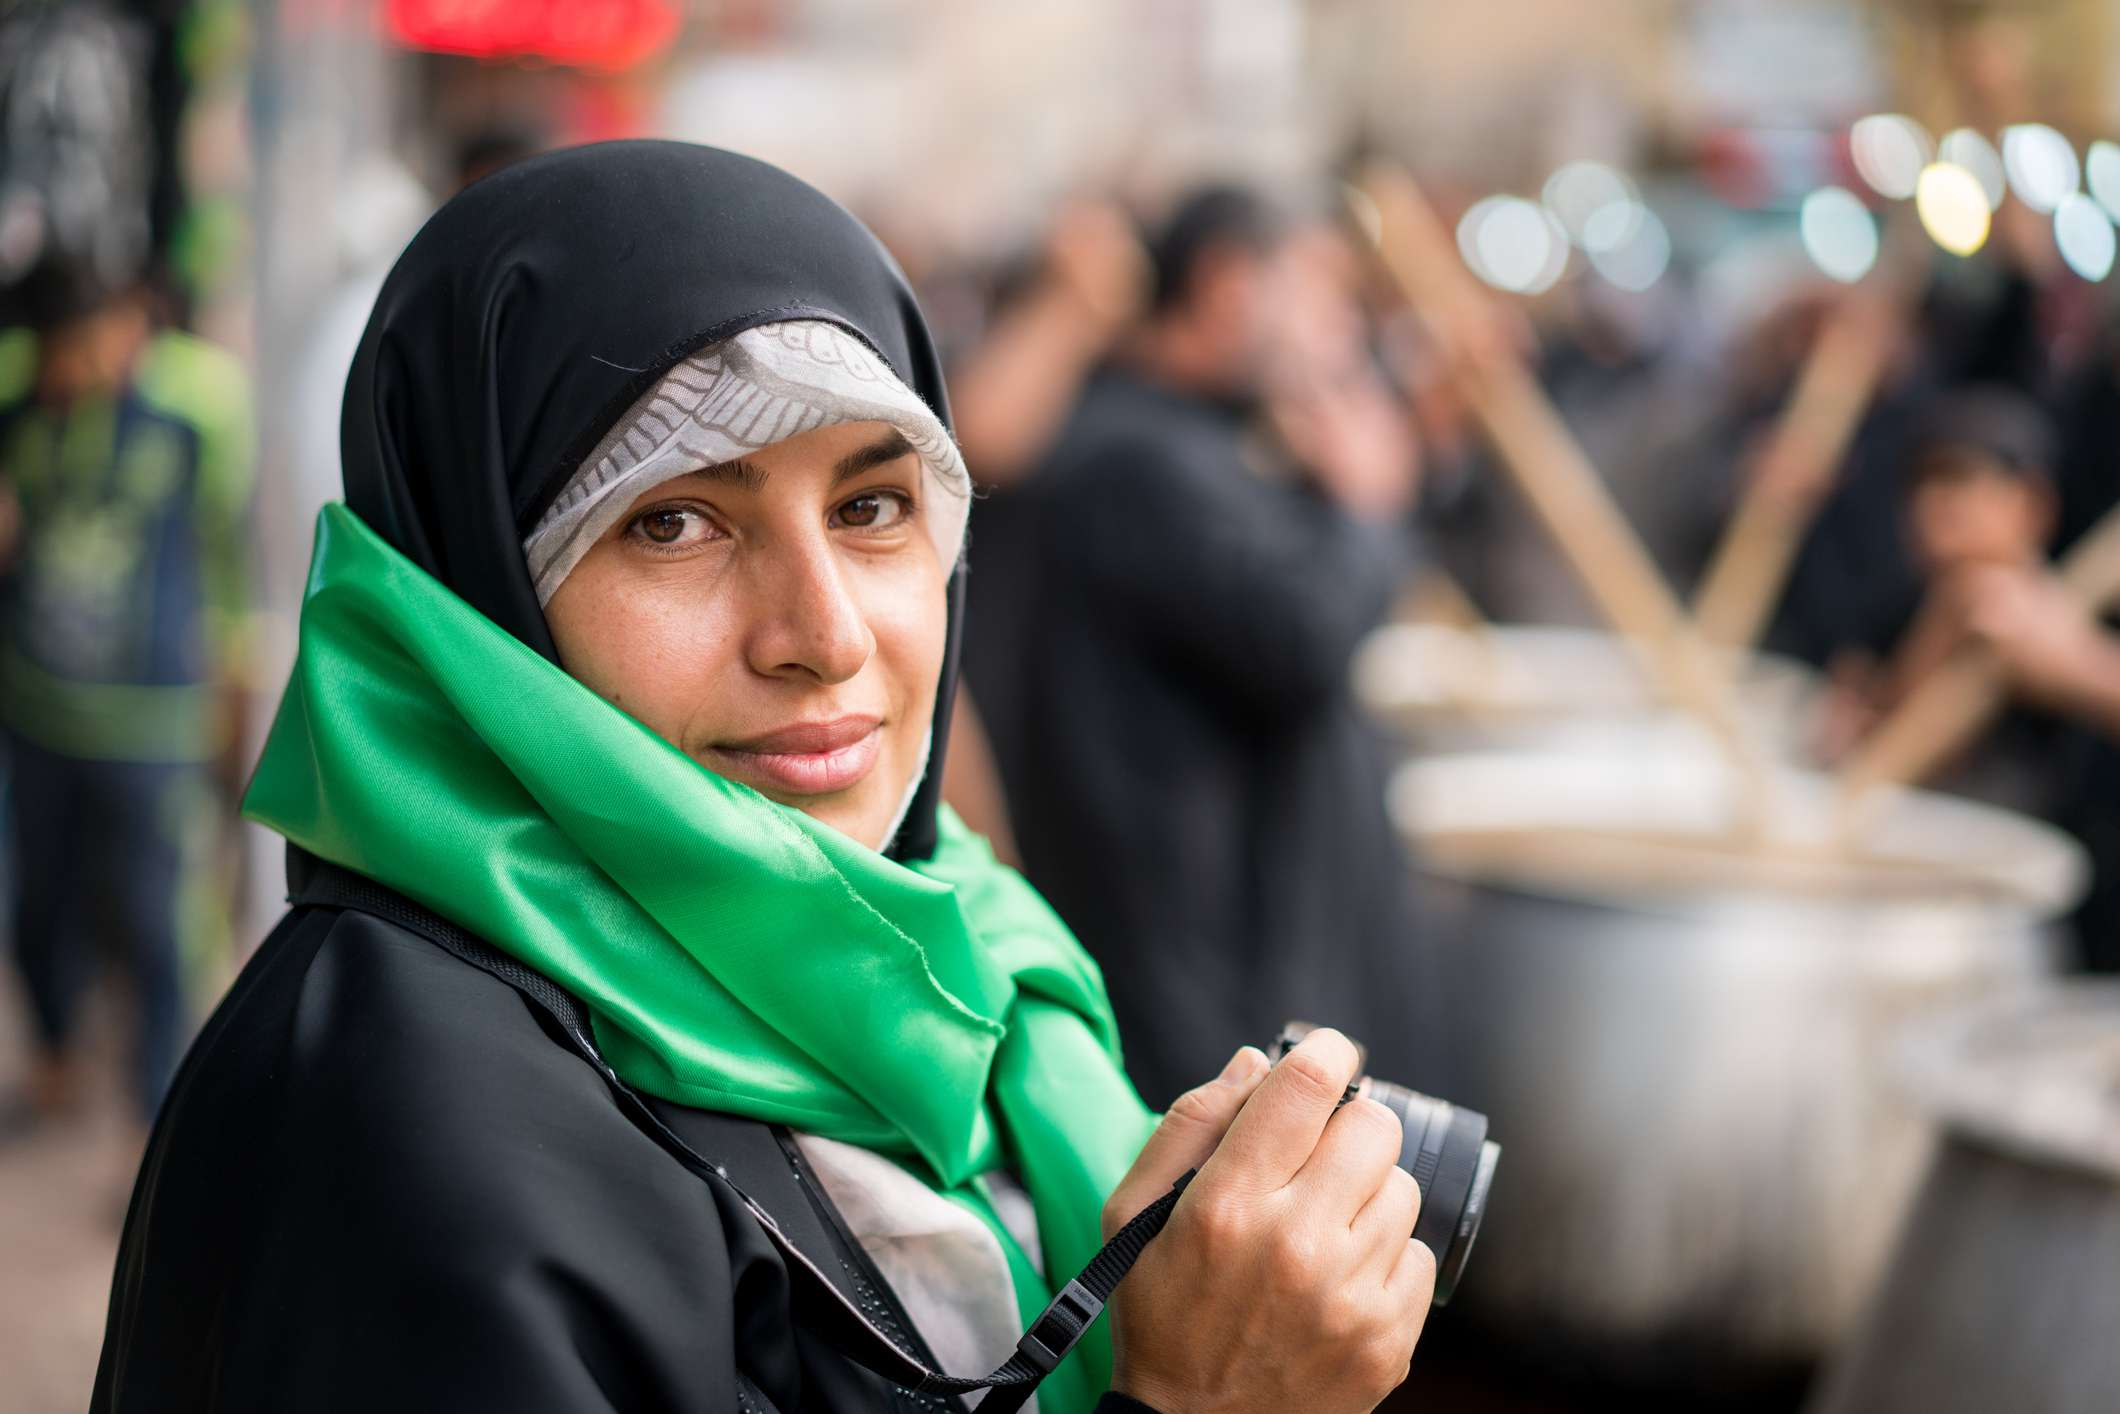 Middle Eastern woman on the street using camera for taking images